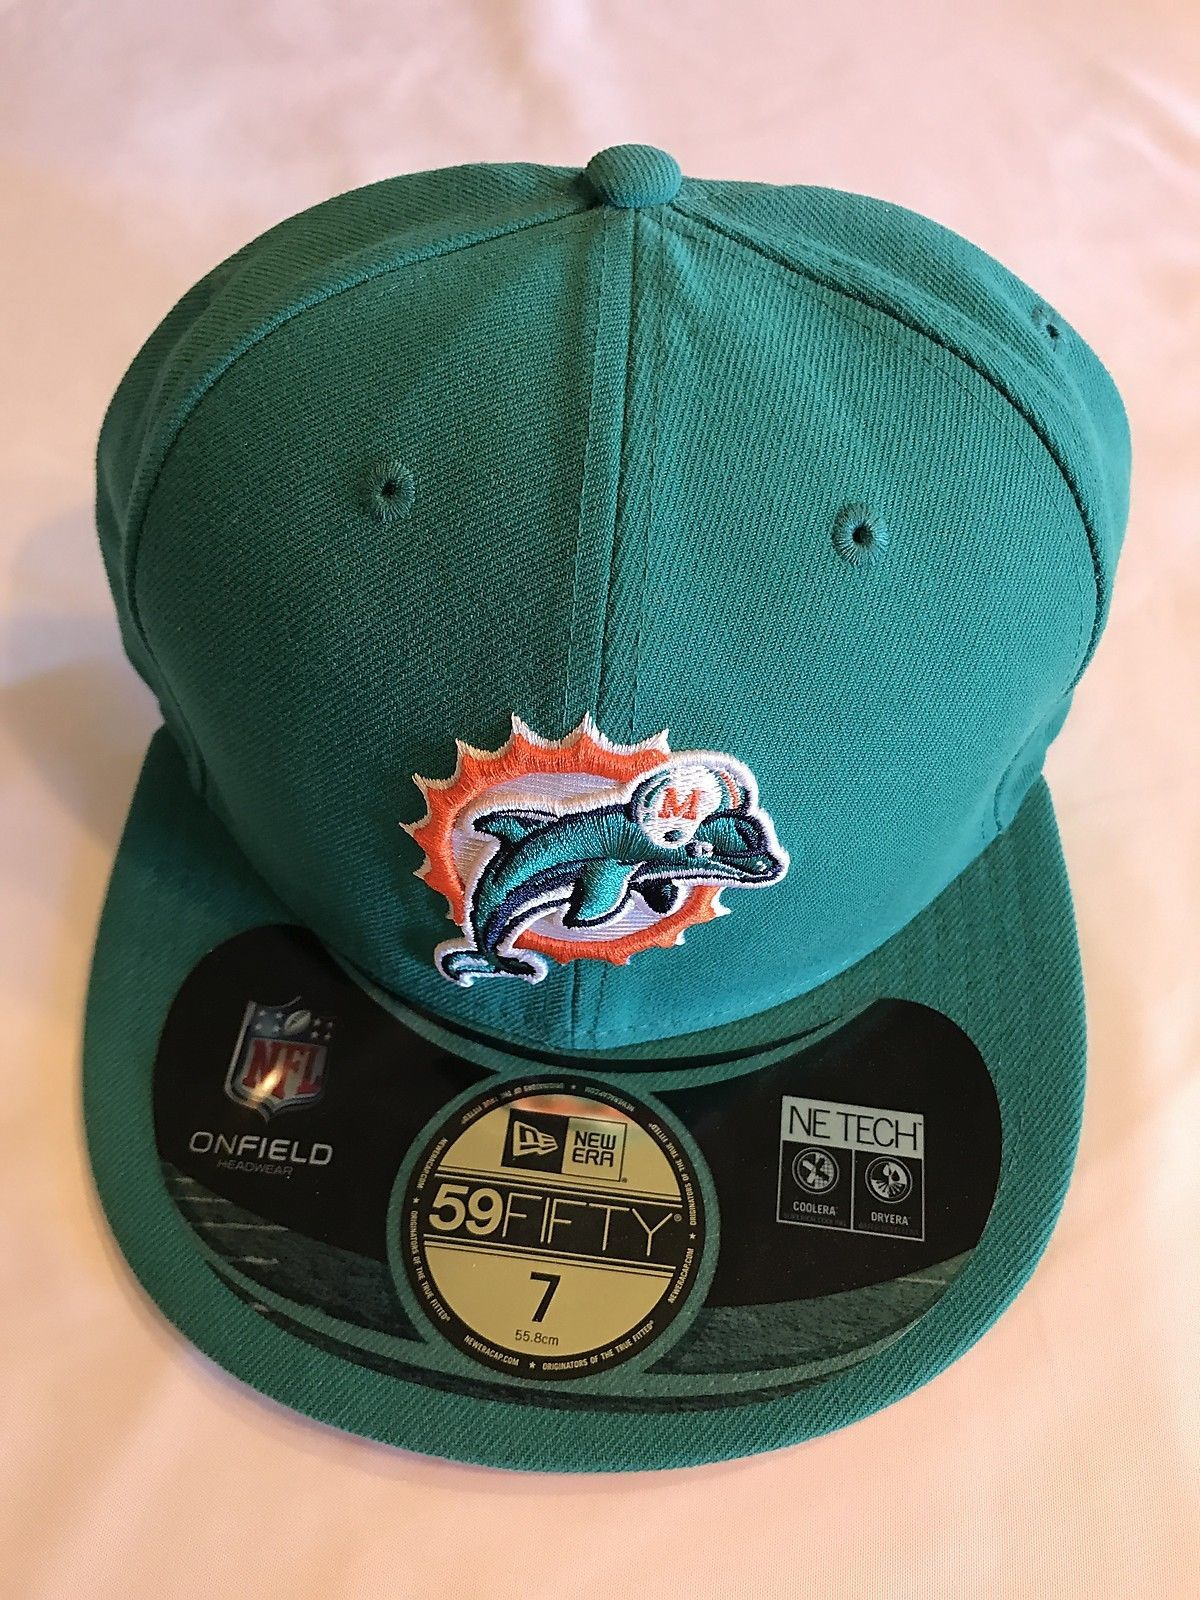 Team Miami Dolphins NFL New Era 59Fifty Aqua and 50 similar items 5c4ba7982